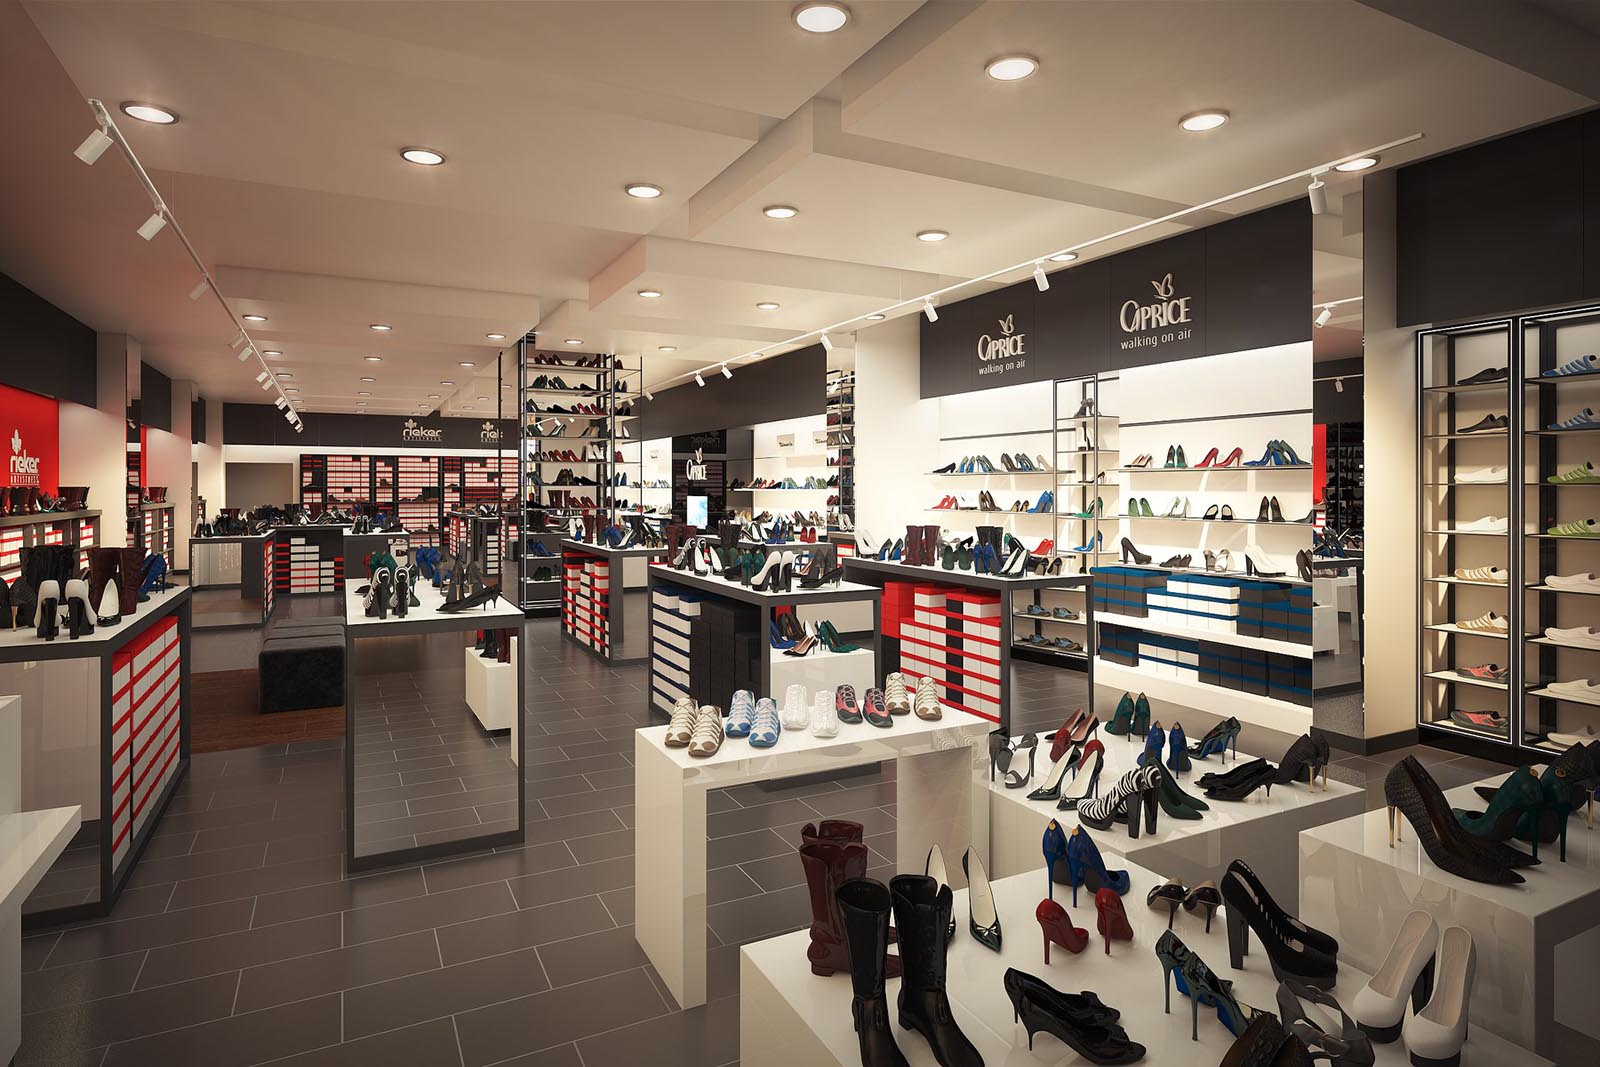 3D visualization render of a Shoe store interior